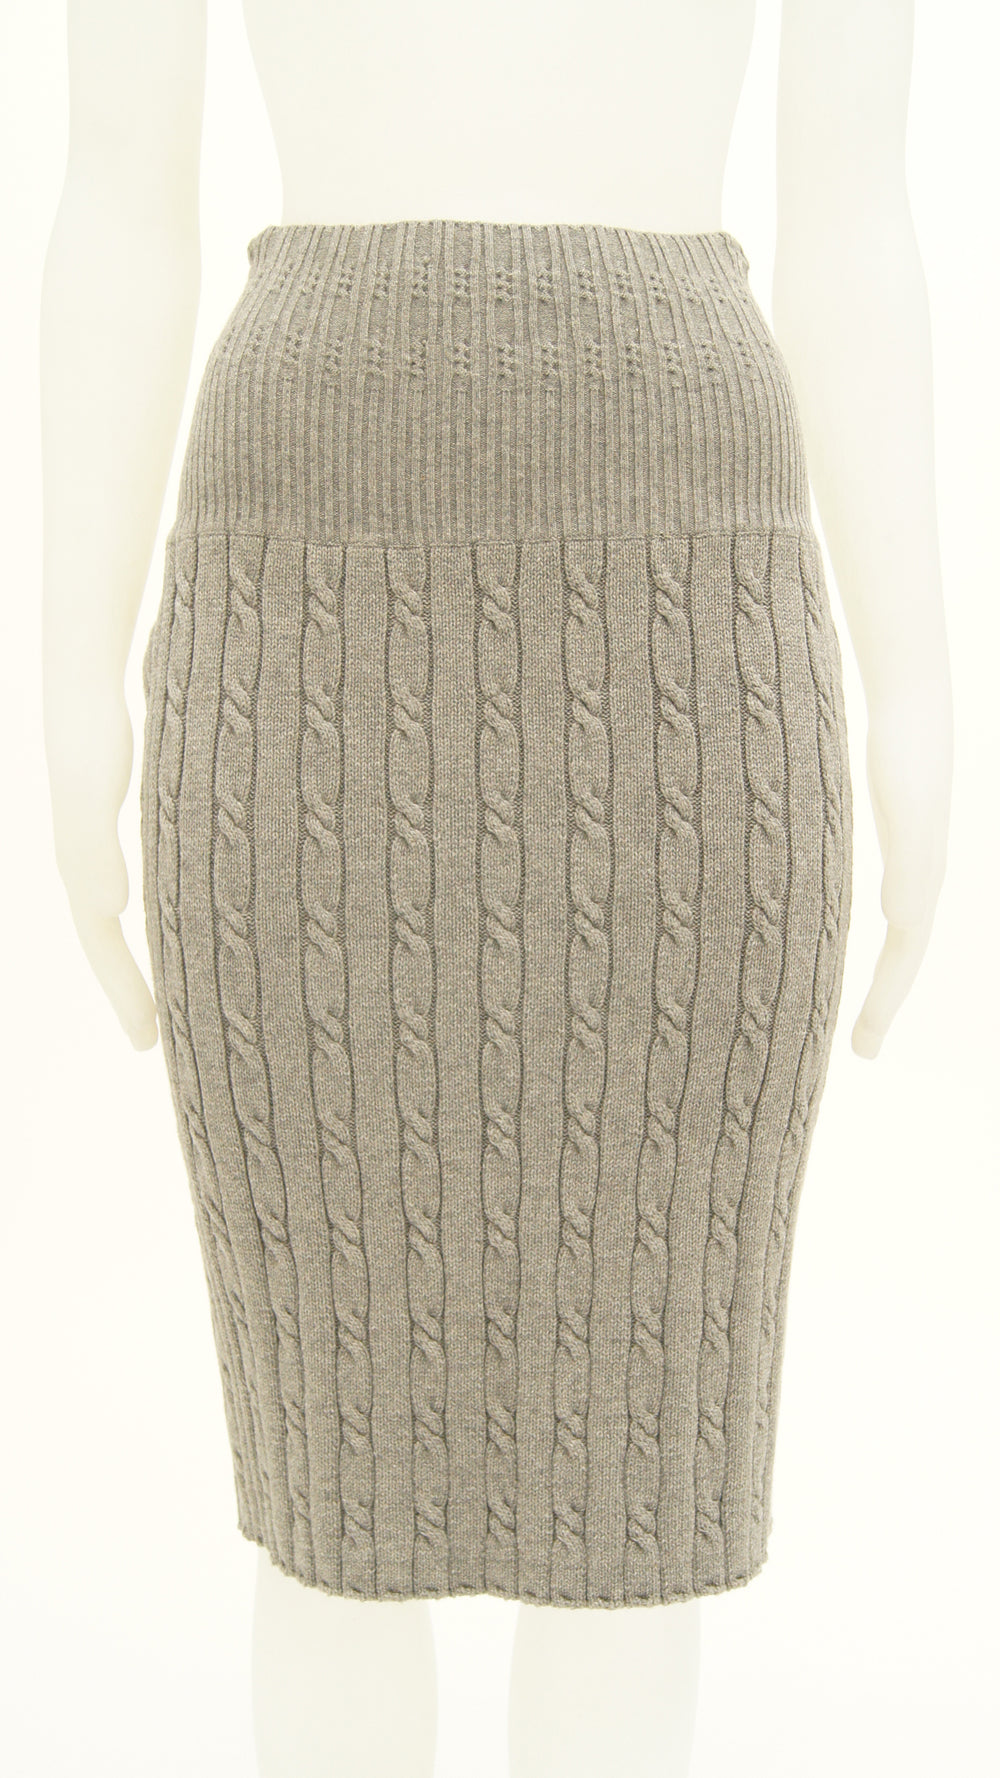 STRAIGHT RIBBED SKIRT - 1